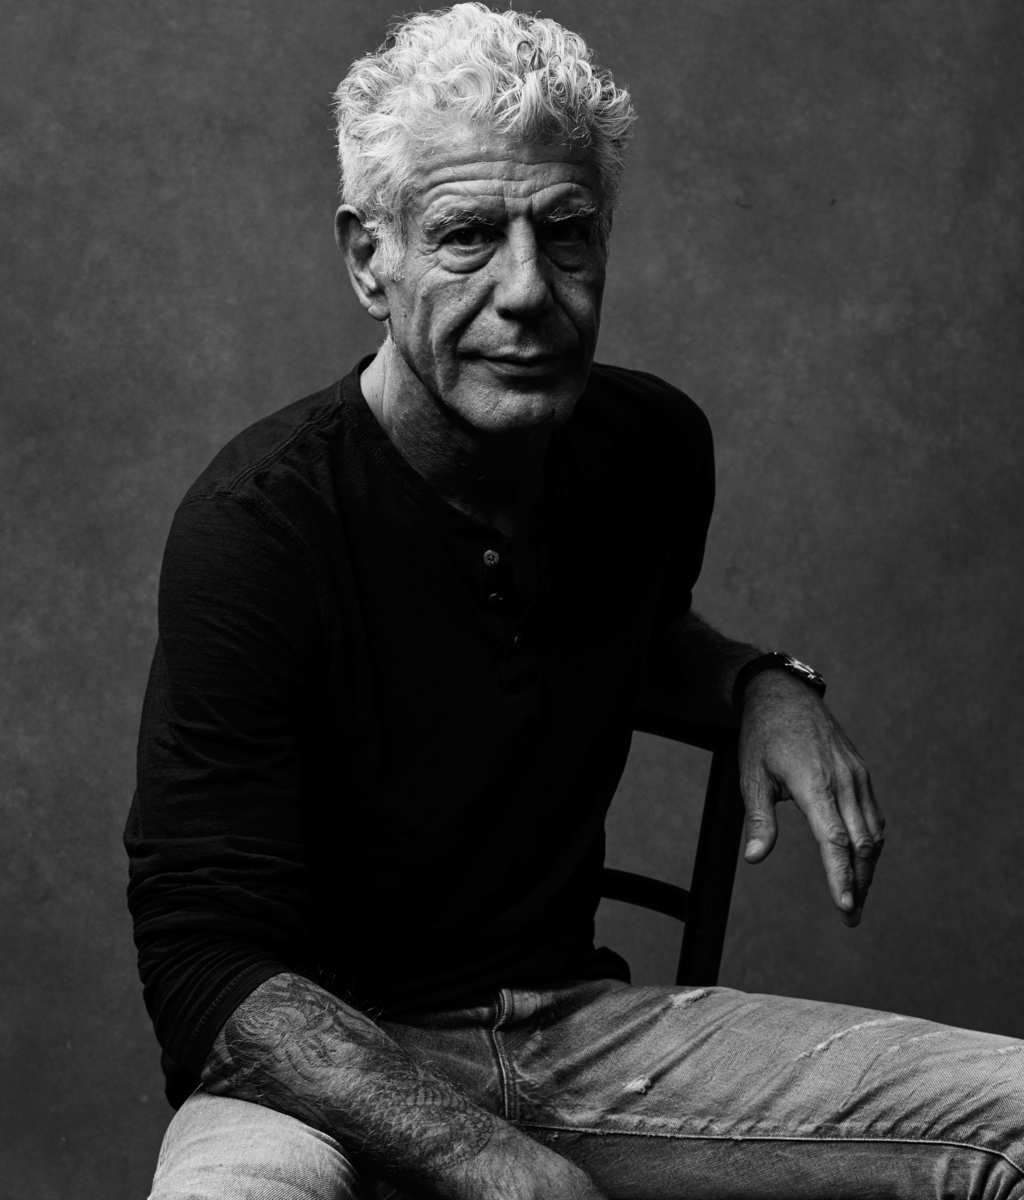 18-anthony-bourdain.w512.h600.2x.jpg